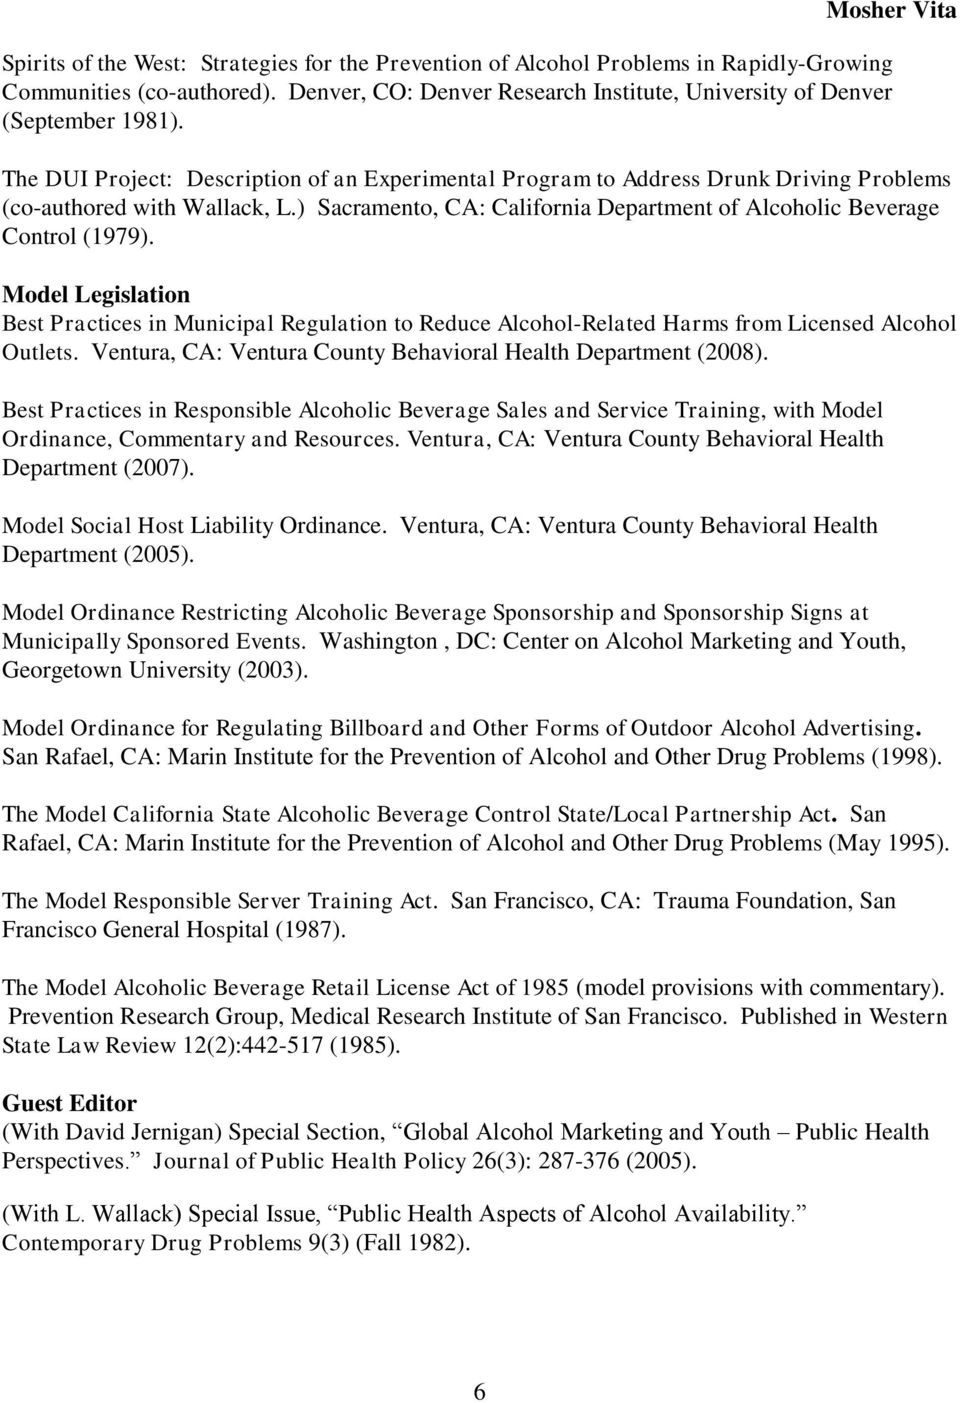 Model Legislation Best Practices in Municipal Regulation to Reduce Alcohol-Related Harms from Licensed Alcohol Outlets. Ventura, CA: Ventura County Behavioral Health Department (2008).